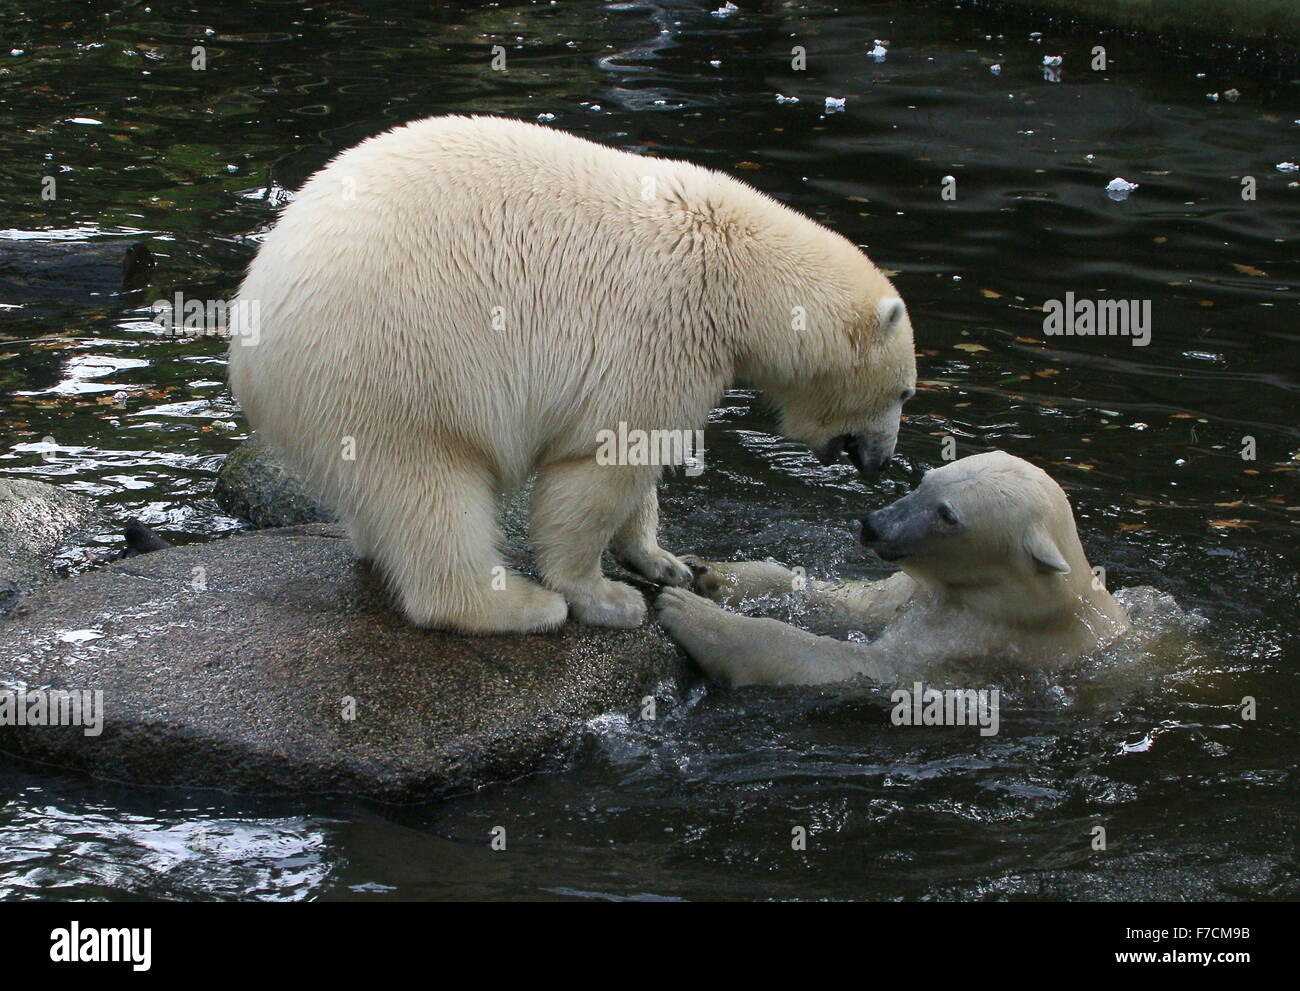 Two spirited female Polar bears (Ursus maritimus) fighting each other on shore, one growling, other surfacing from - Stock Image